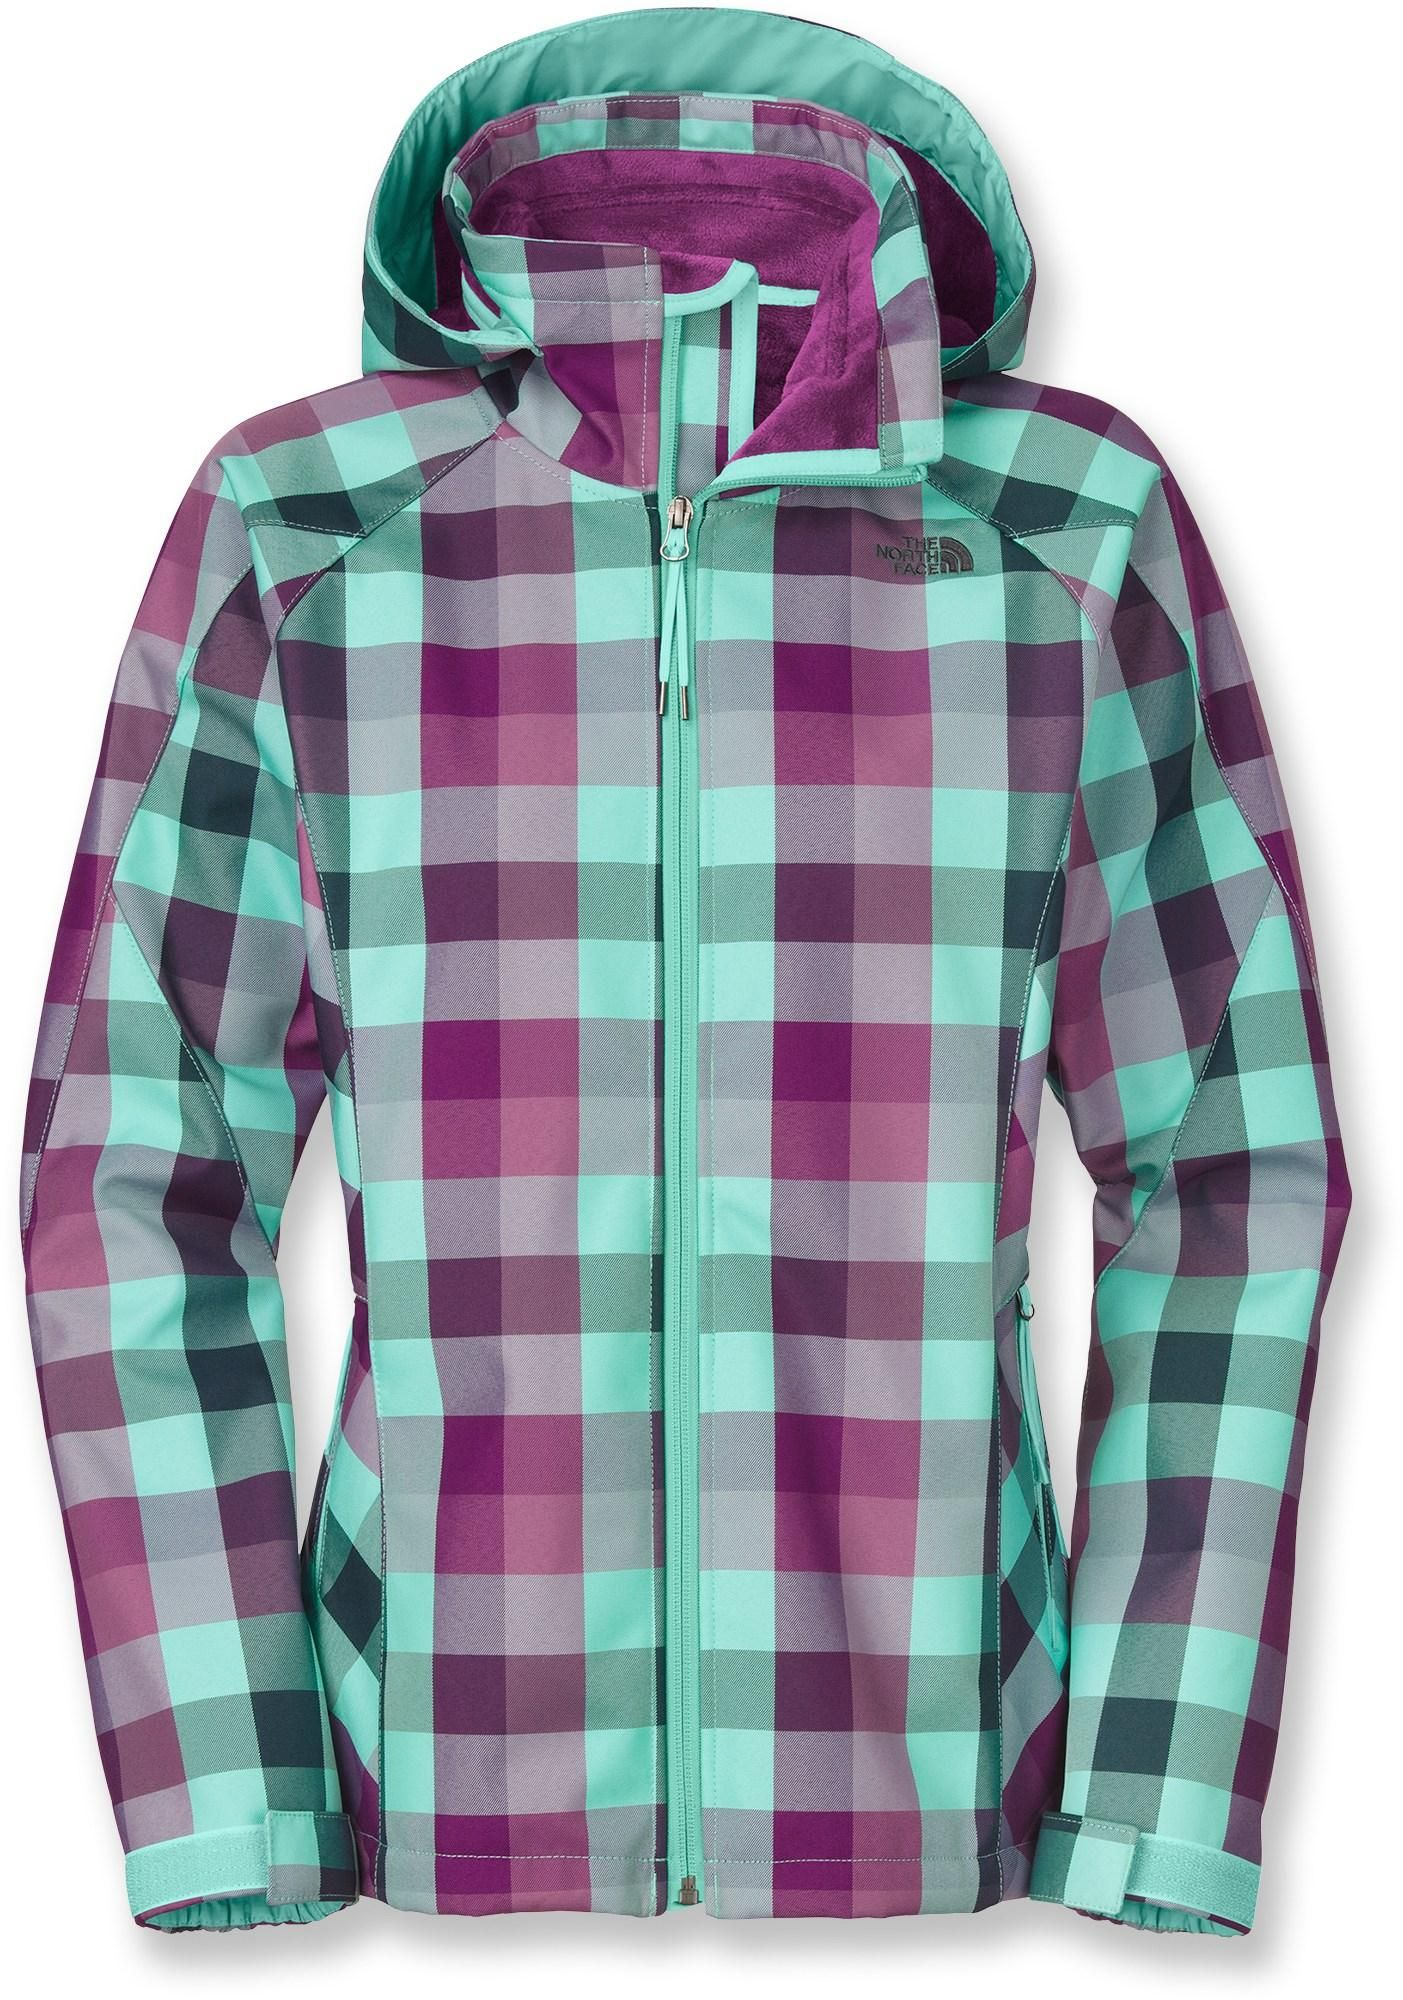 At REI Outlet: Be Mad for Plaid—The North Face Morgan Jacket ...